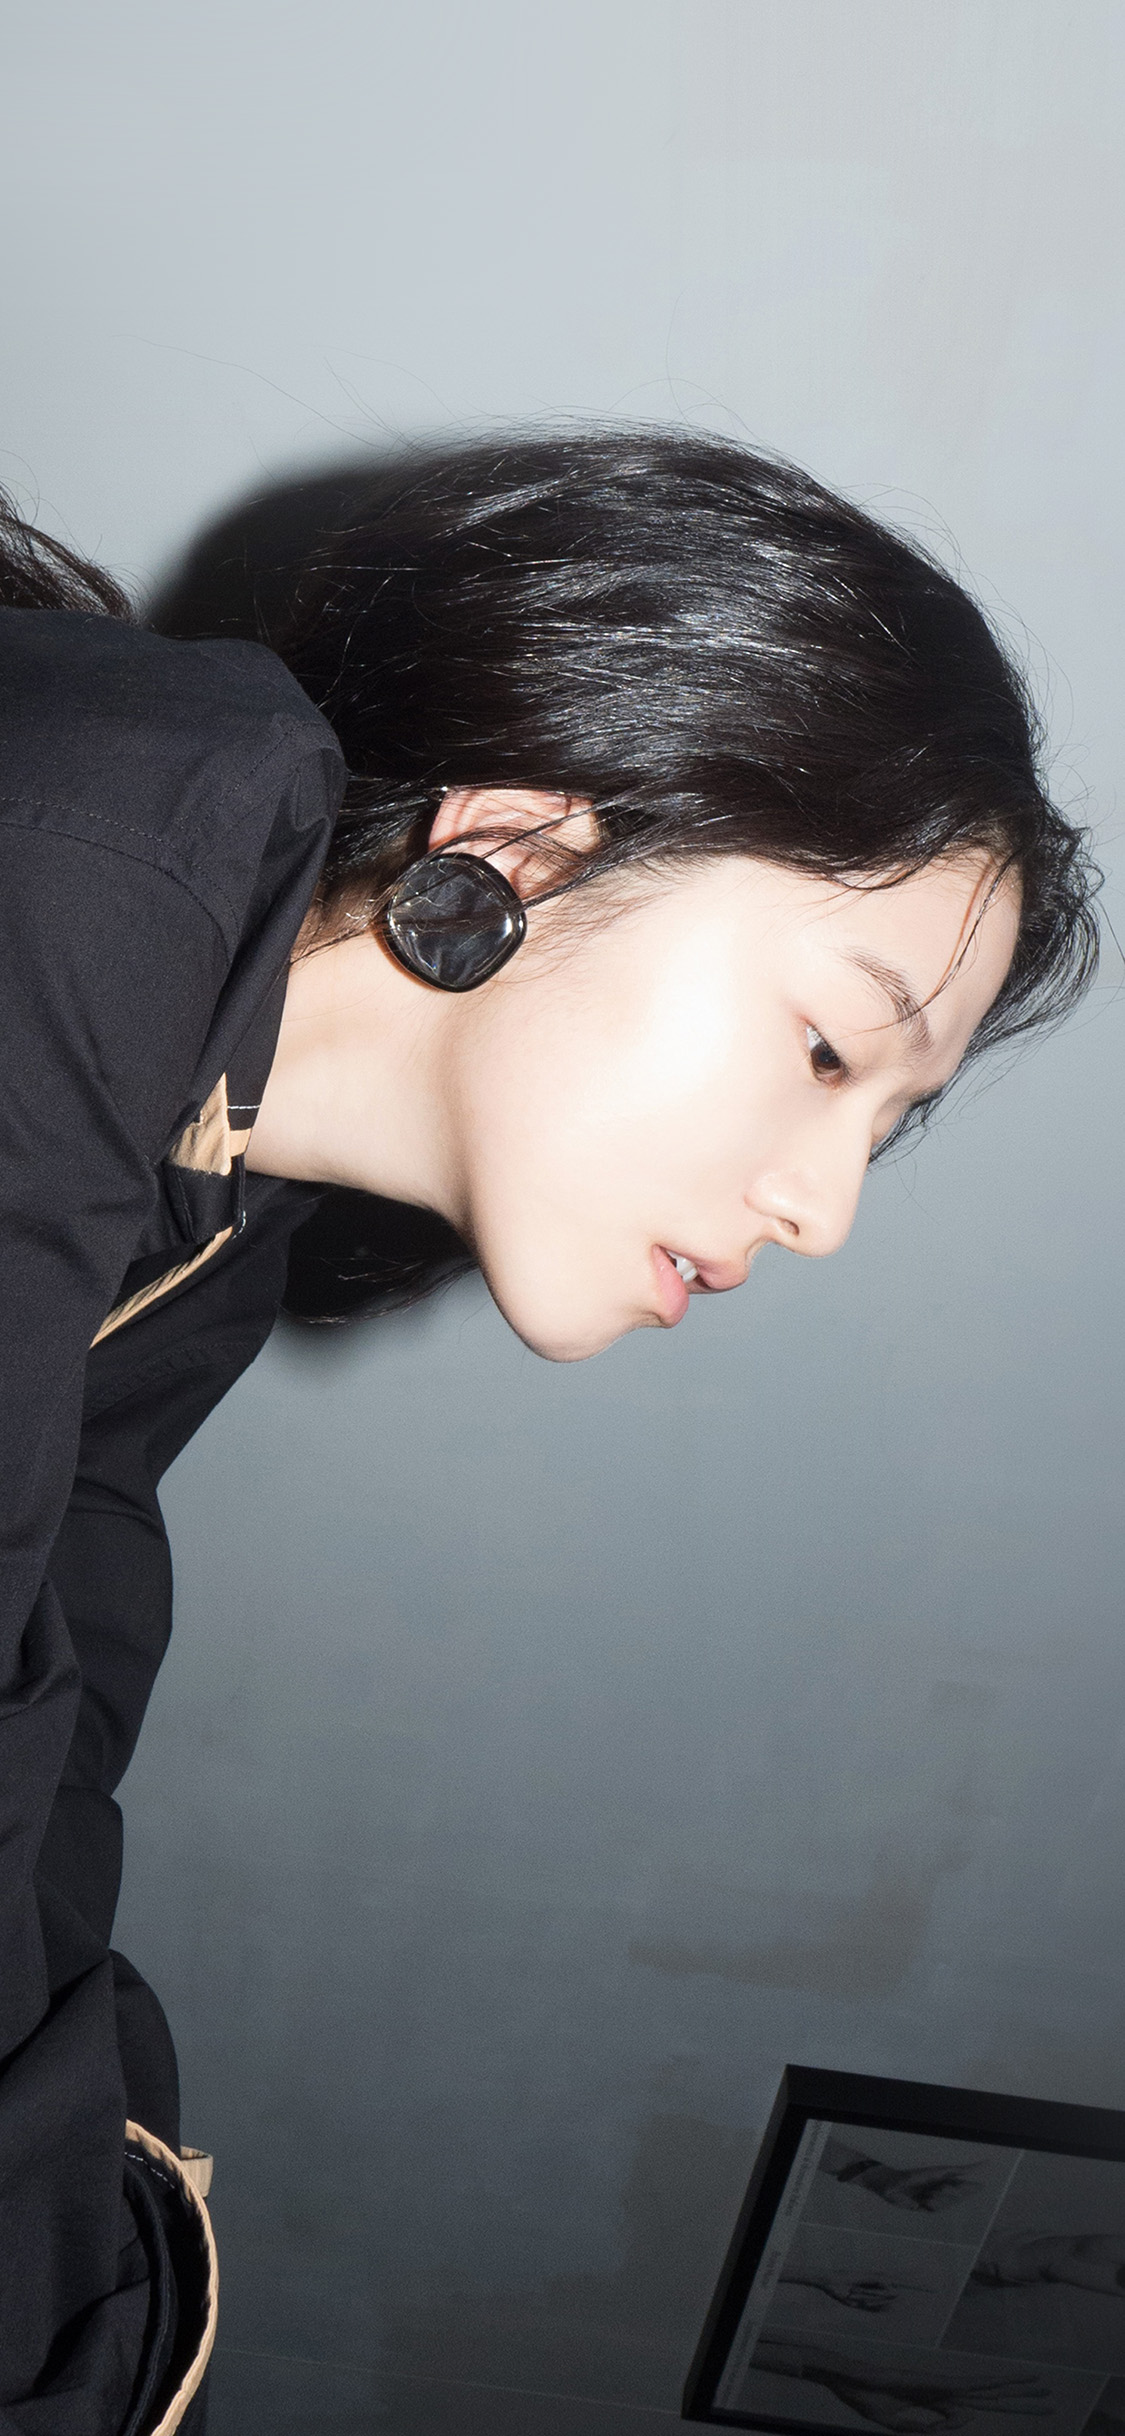 iPhonexpapers.com-Apple-iPhone-wallpaper-hr53-kpop-hyesoo-girl-pretty-face